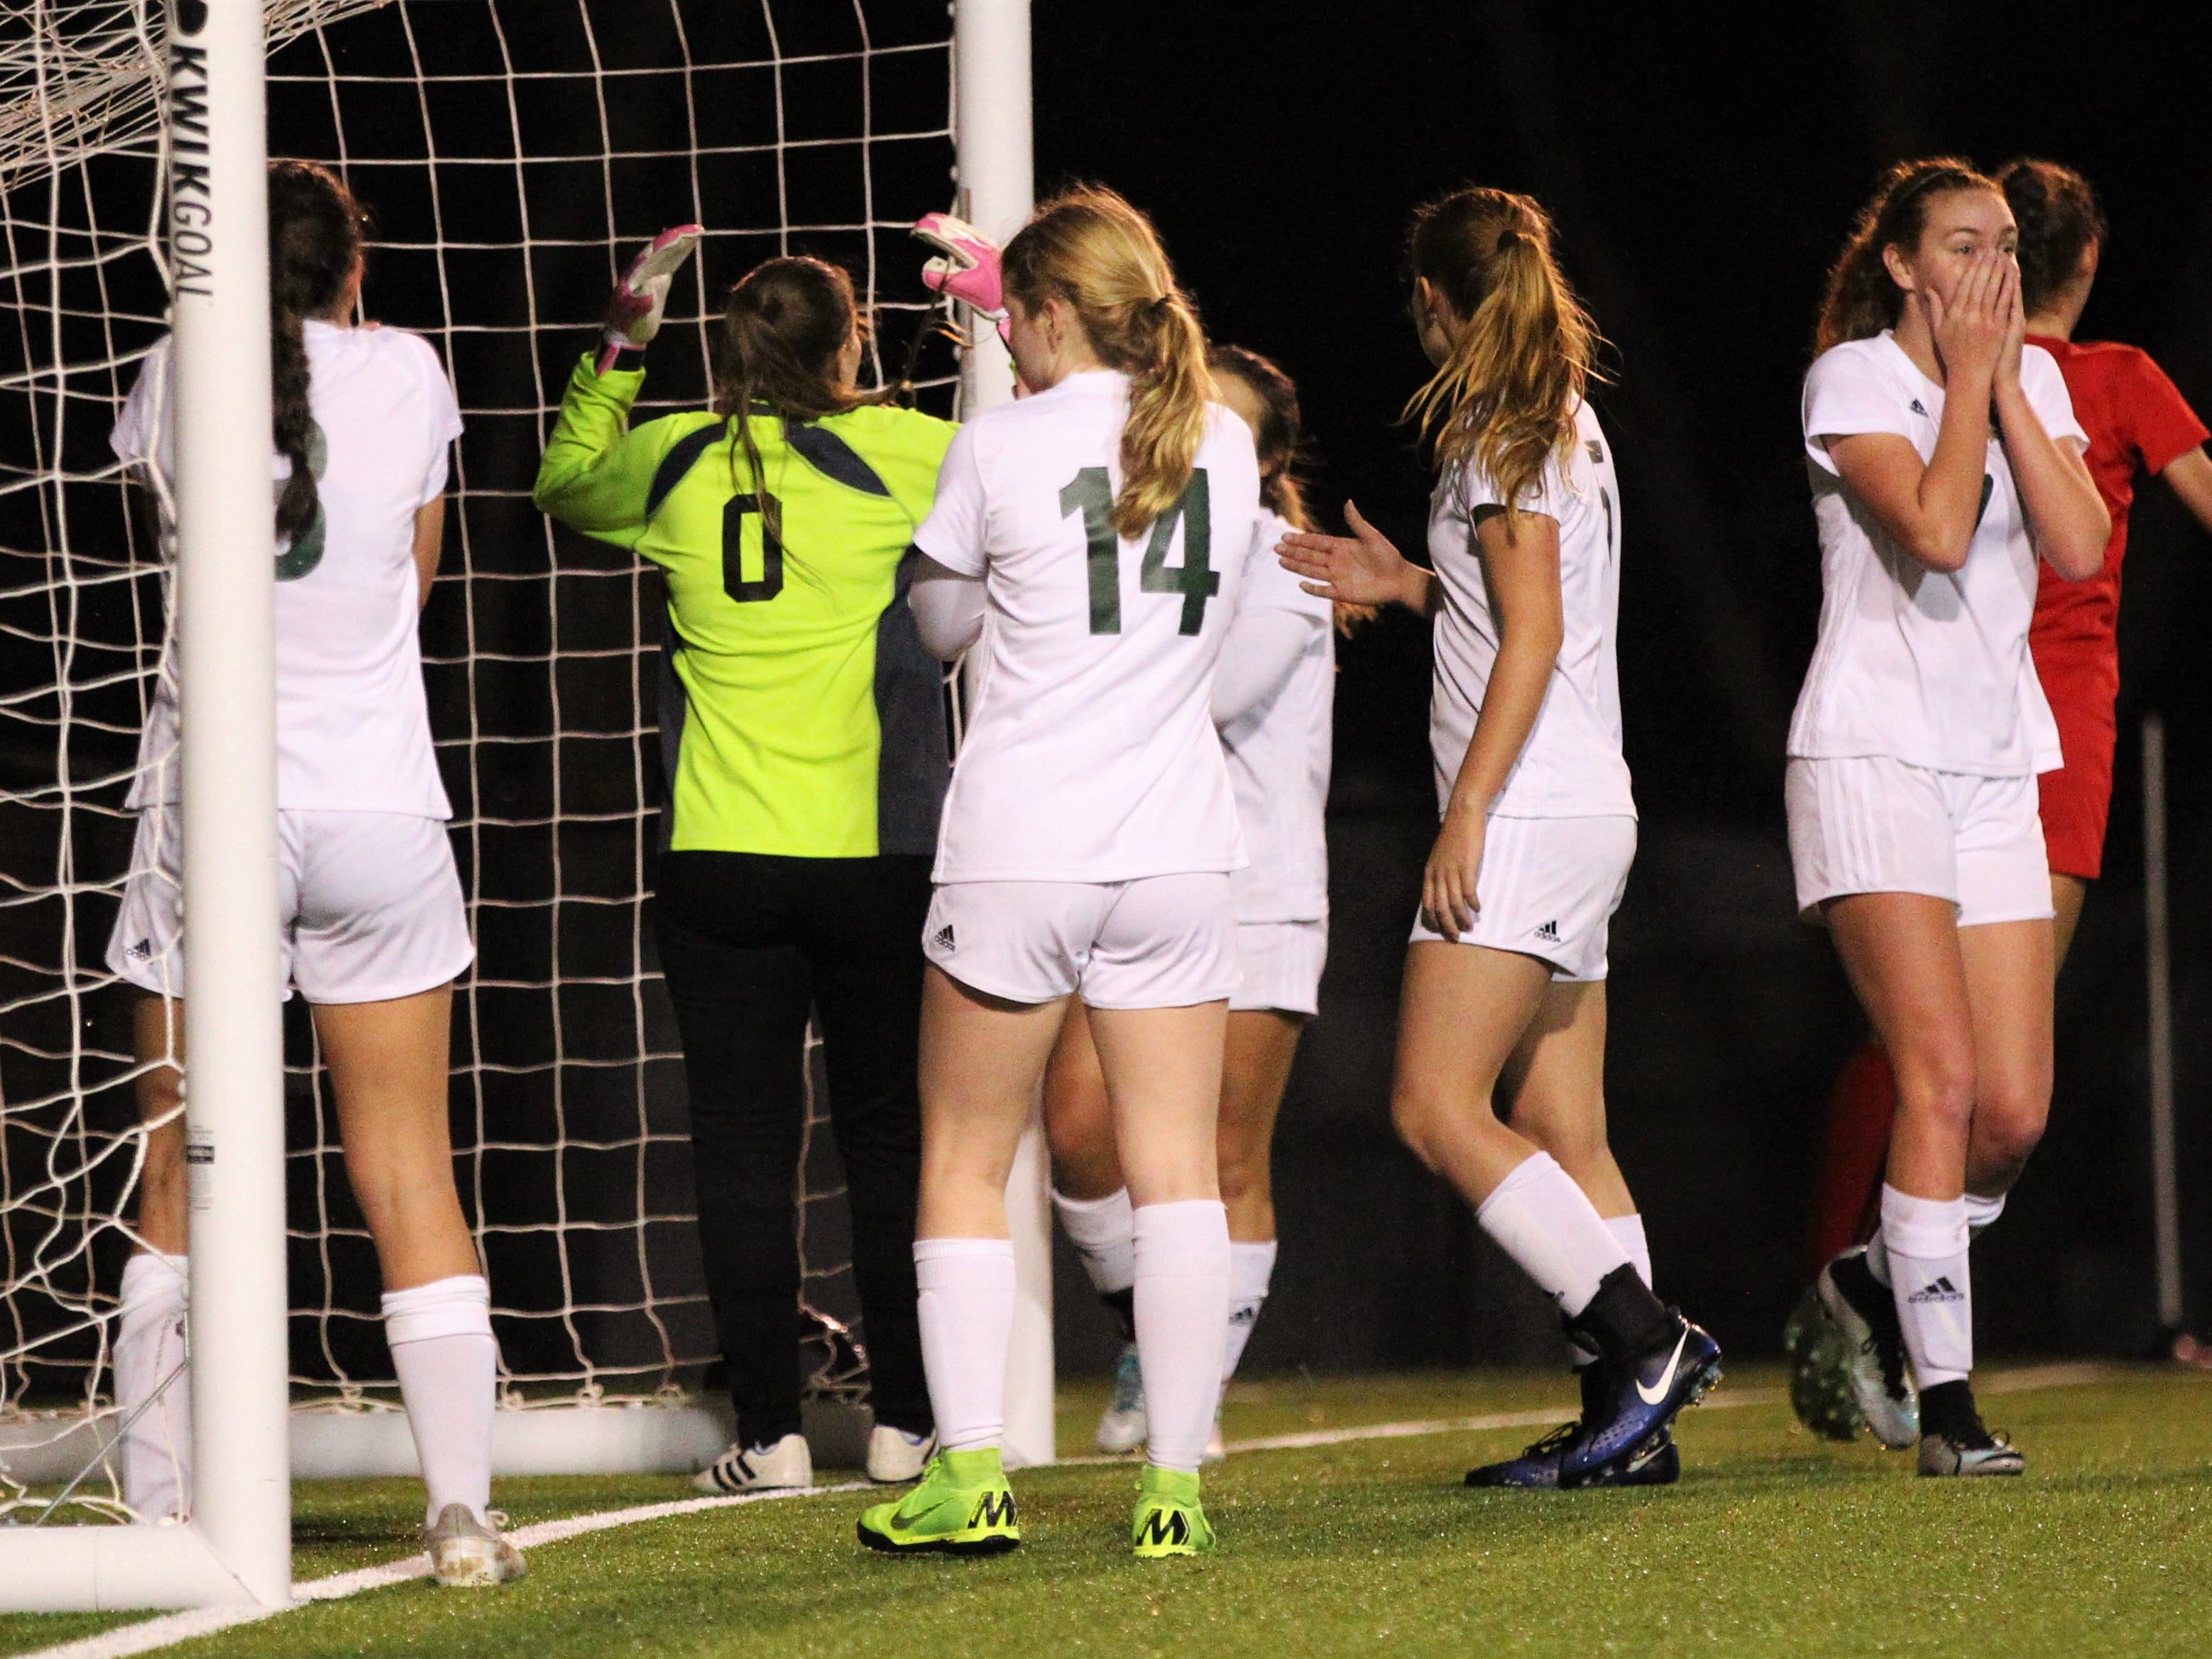 Lincoln keeper Pamela Moore and the Trojans react to Leon senior Liney Brantley sneaking a game-tying goal inside the near post on a corner kick as Leon's girls soccer team beat Lincoln 2-1 in the District 2-4A championship at Gene Cox Stadium on Feb. 1, 2019.